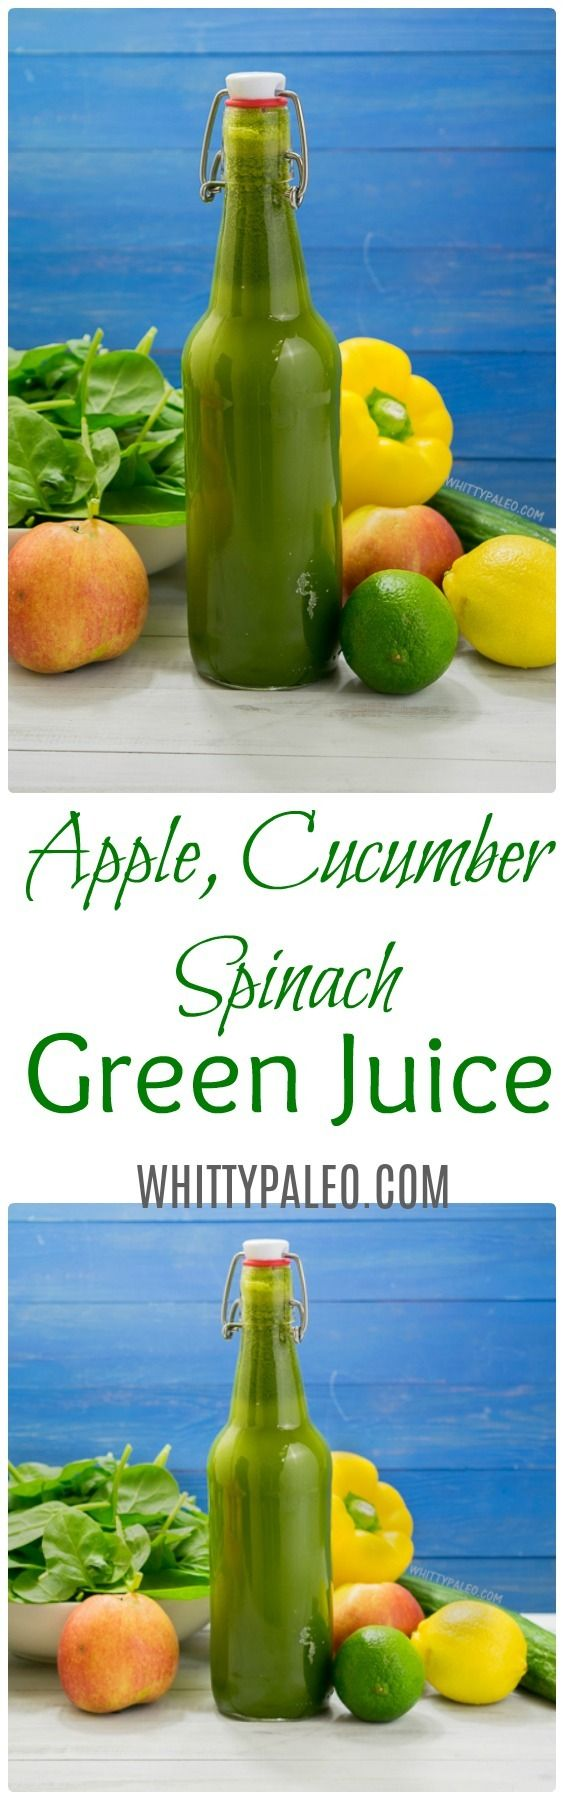 Apple Cucumber Spinach Green Detox juice for juice fast. The spin on the mean green juice with vitamins and nutrients. Find out why green juices are good for you and healthy! From WhittyPaleo.com